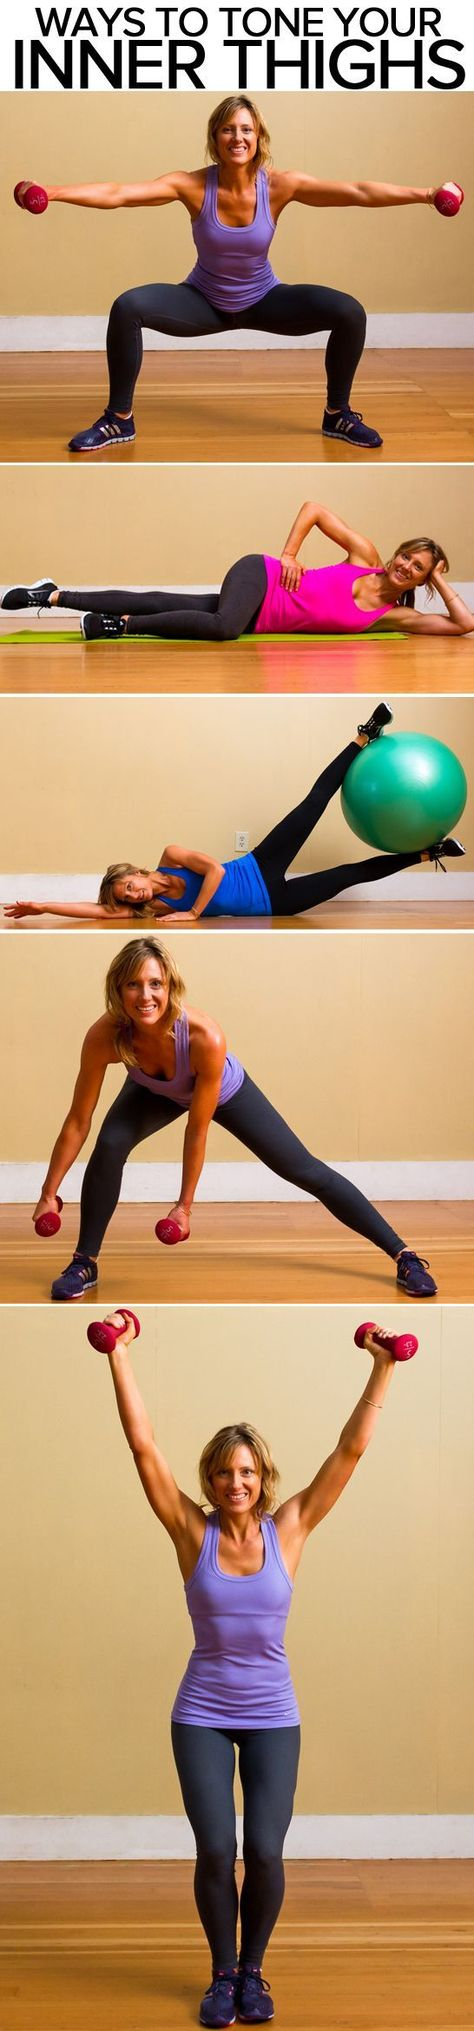 Ways To Tone Your Inner Thighs